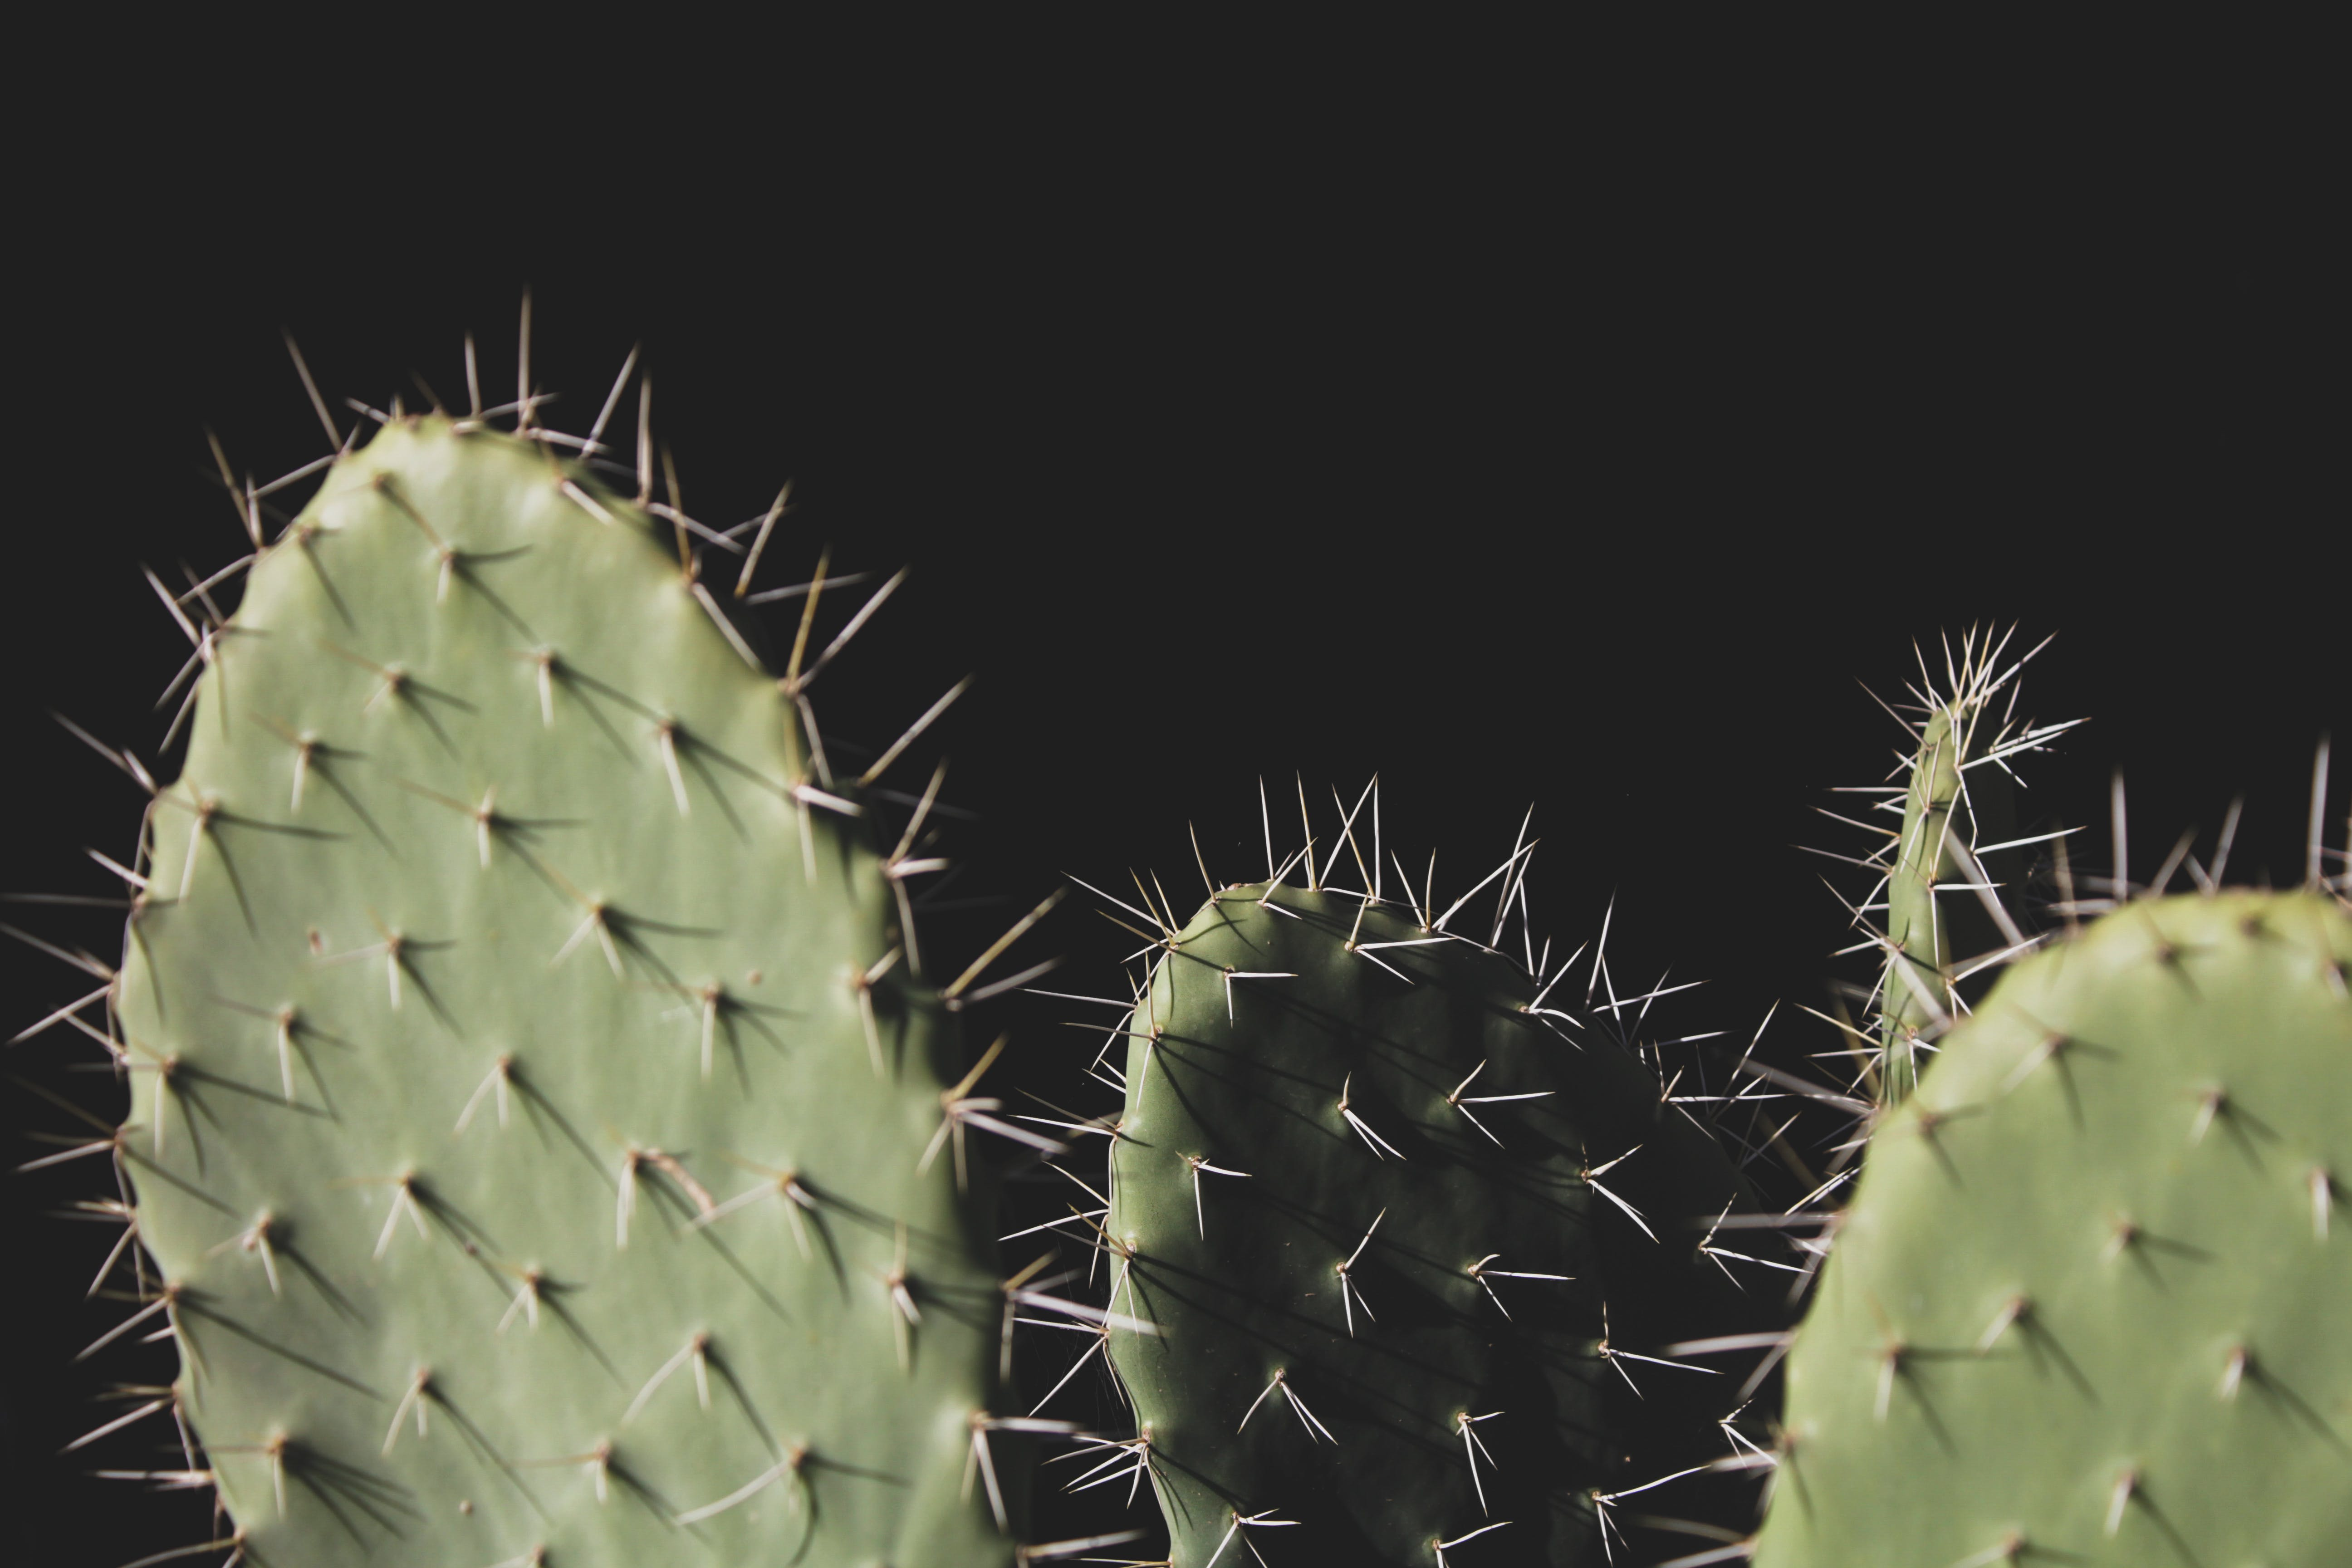 Close-up Photo of Three Green Cactus Plants